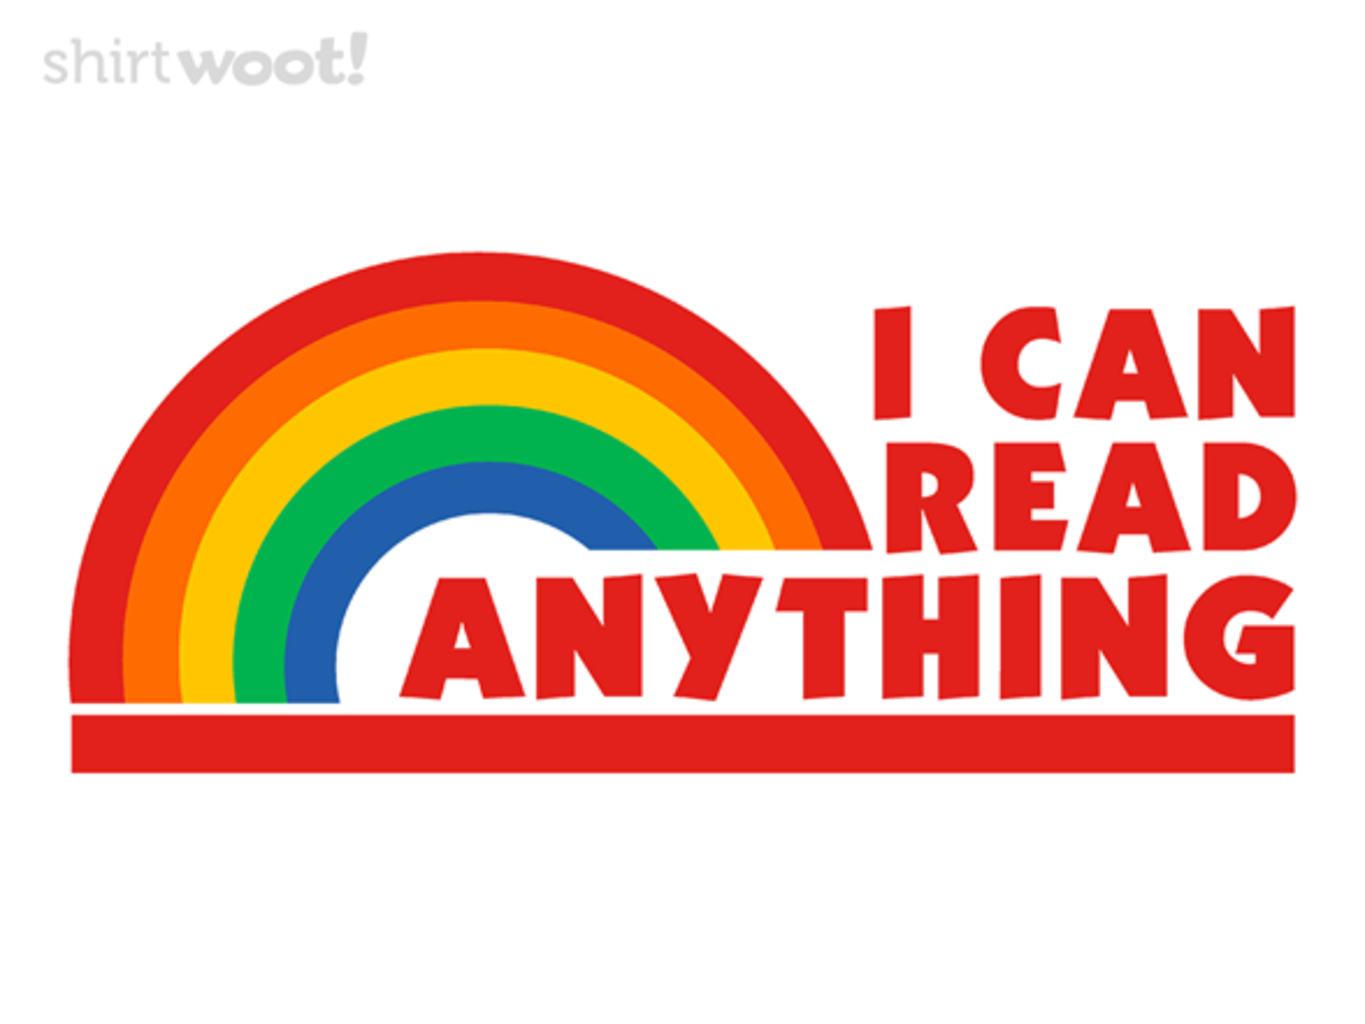 Woot!: Reading Anything